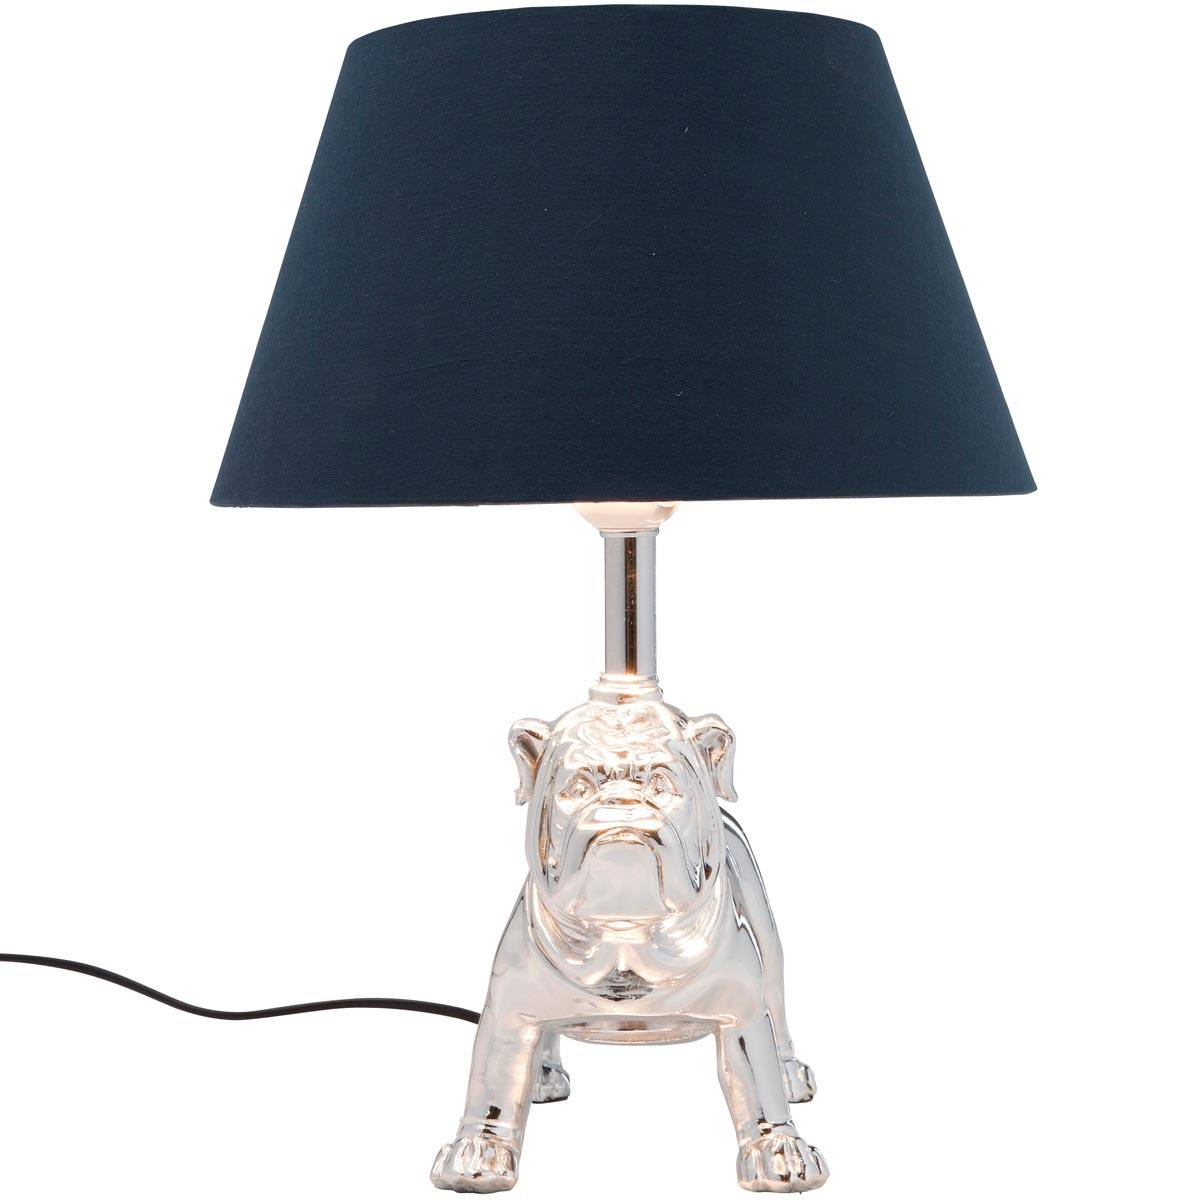 NEW Polished Bouledogue Table Lamp